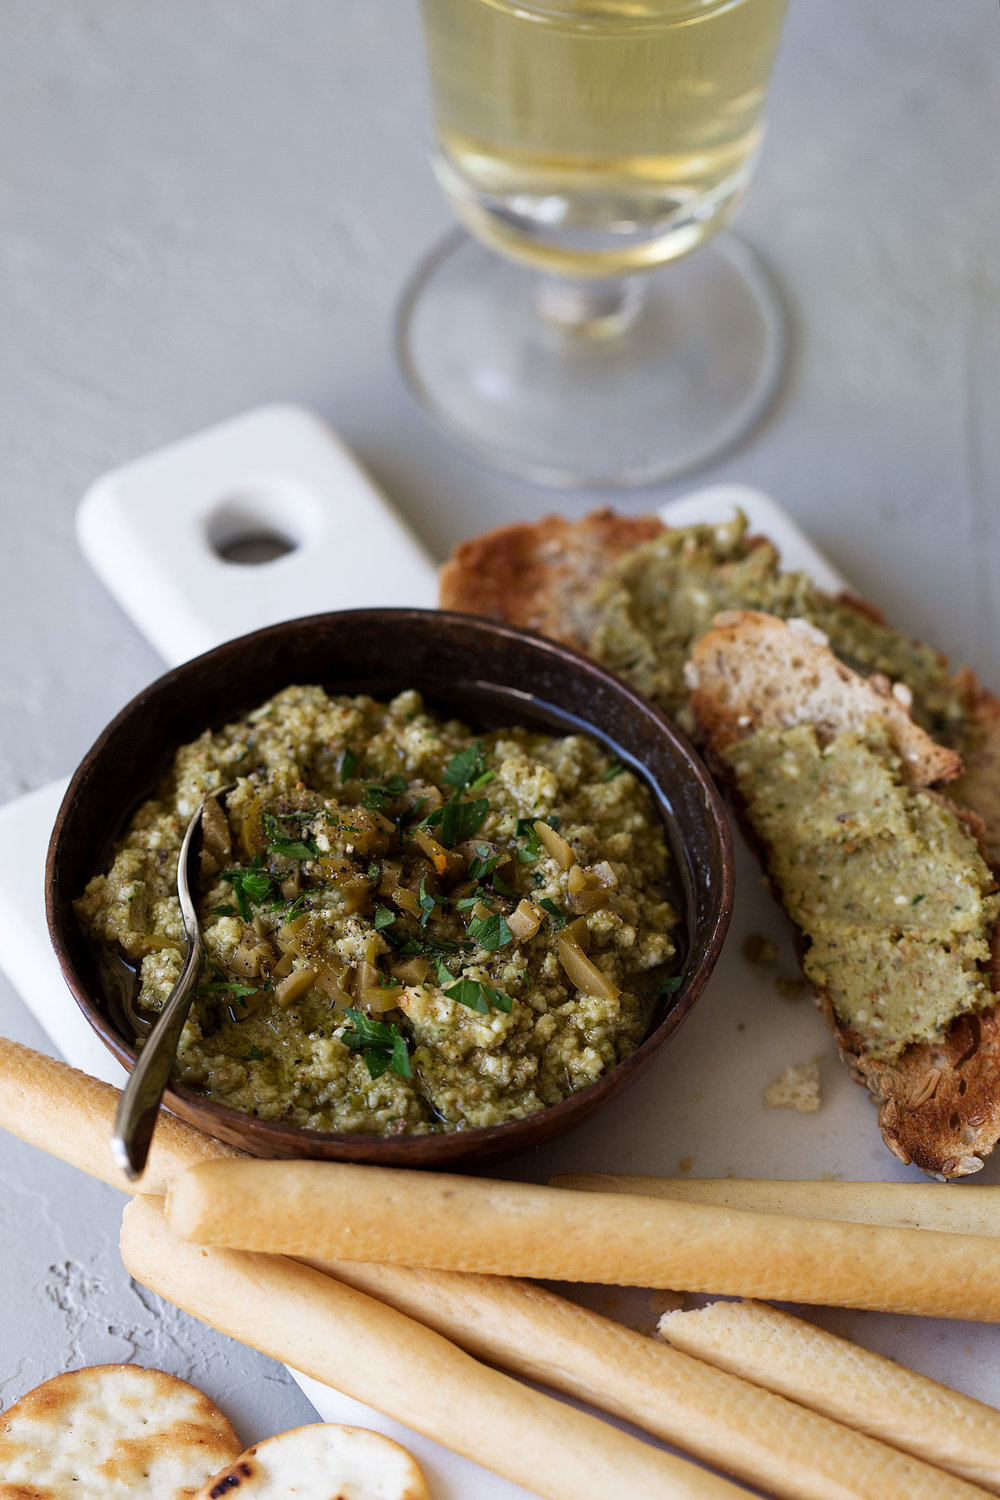 Green olive tapenade recipe from cooking with cocktail rings